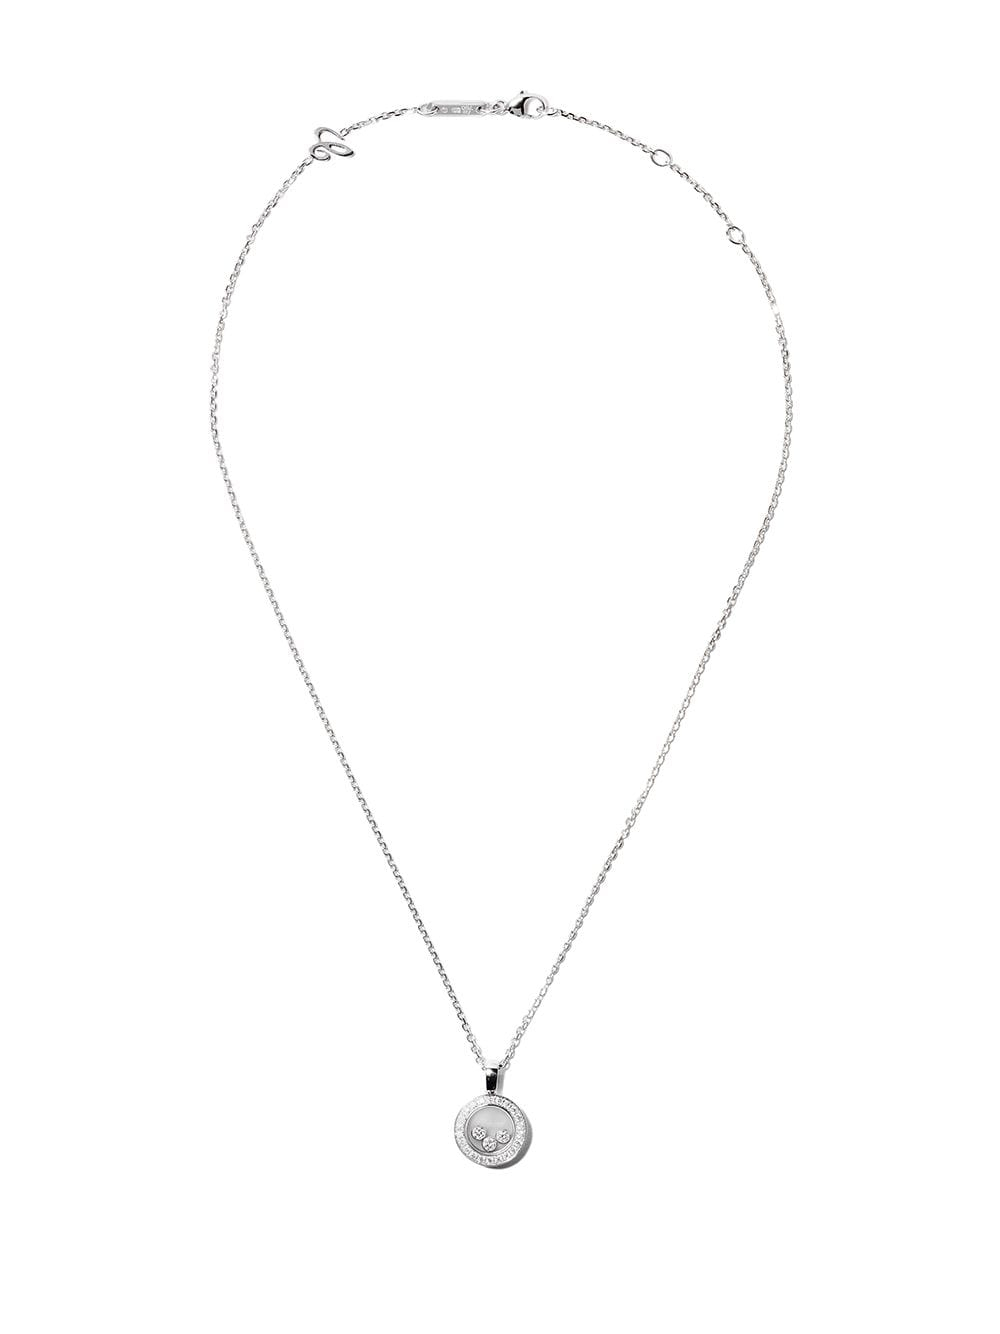 Chopard 18kt White Gold Happy Diamond Icons Pendant Necklace Pertaining To Most Recent Sparkling Ice Cube Circle Pendant Necklaces (View 13 of 25)